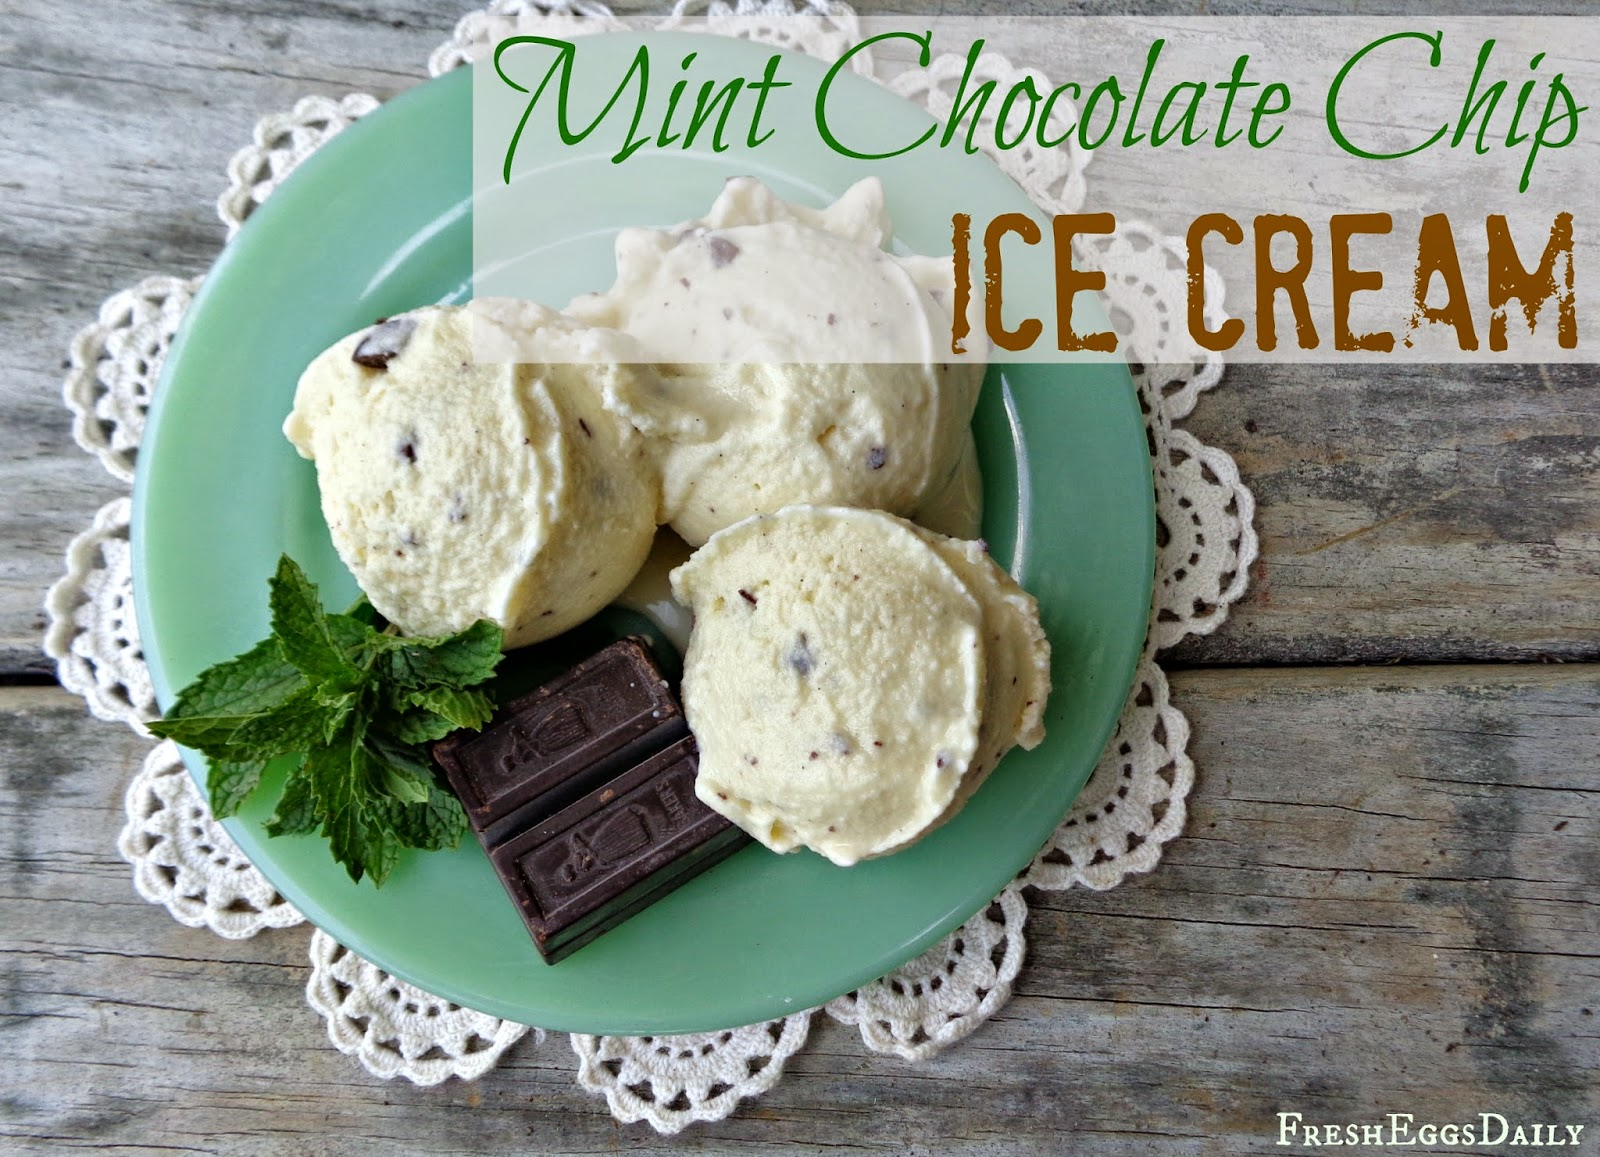 Build a coop blog: Mint Chocolate Chip Ice Cream with Fresh Eggs